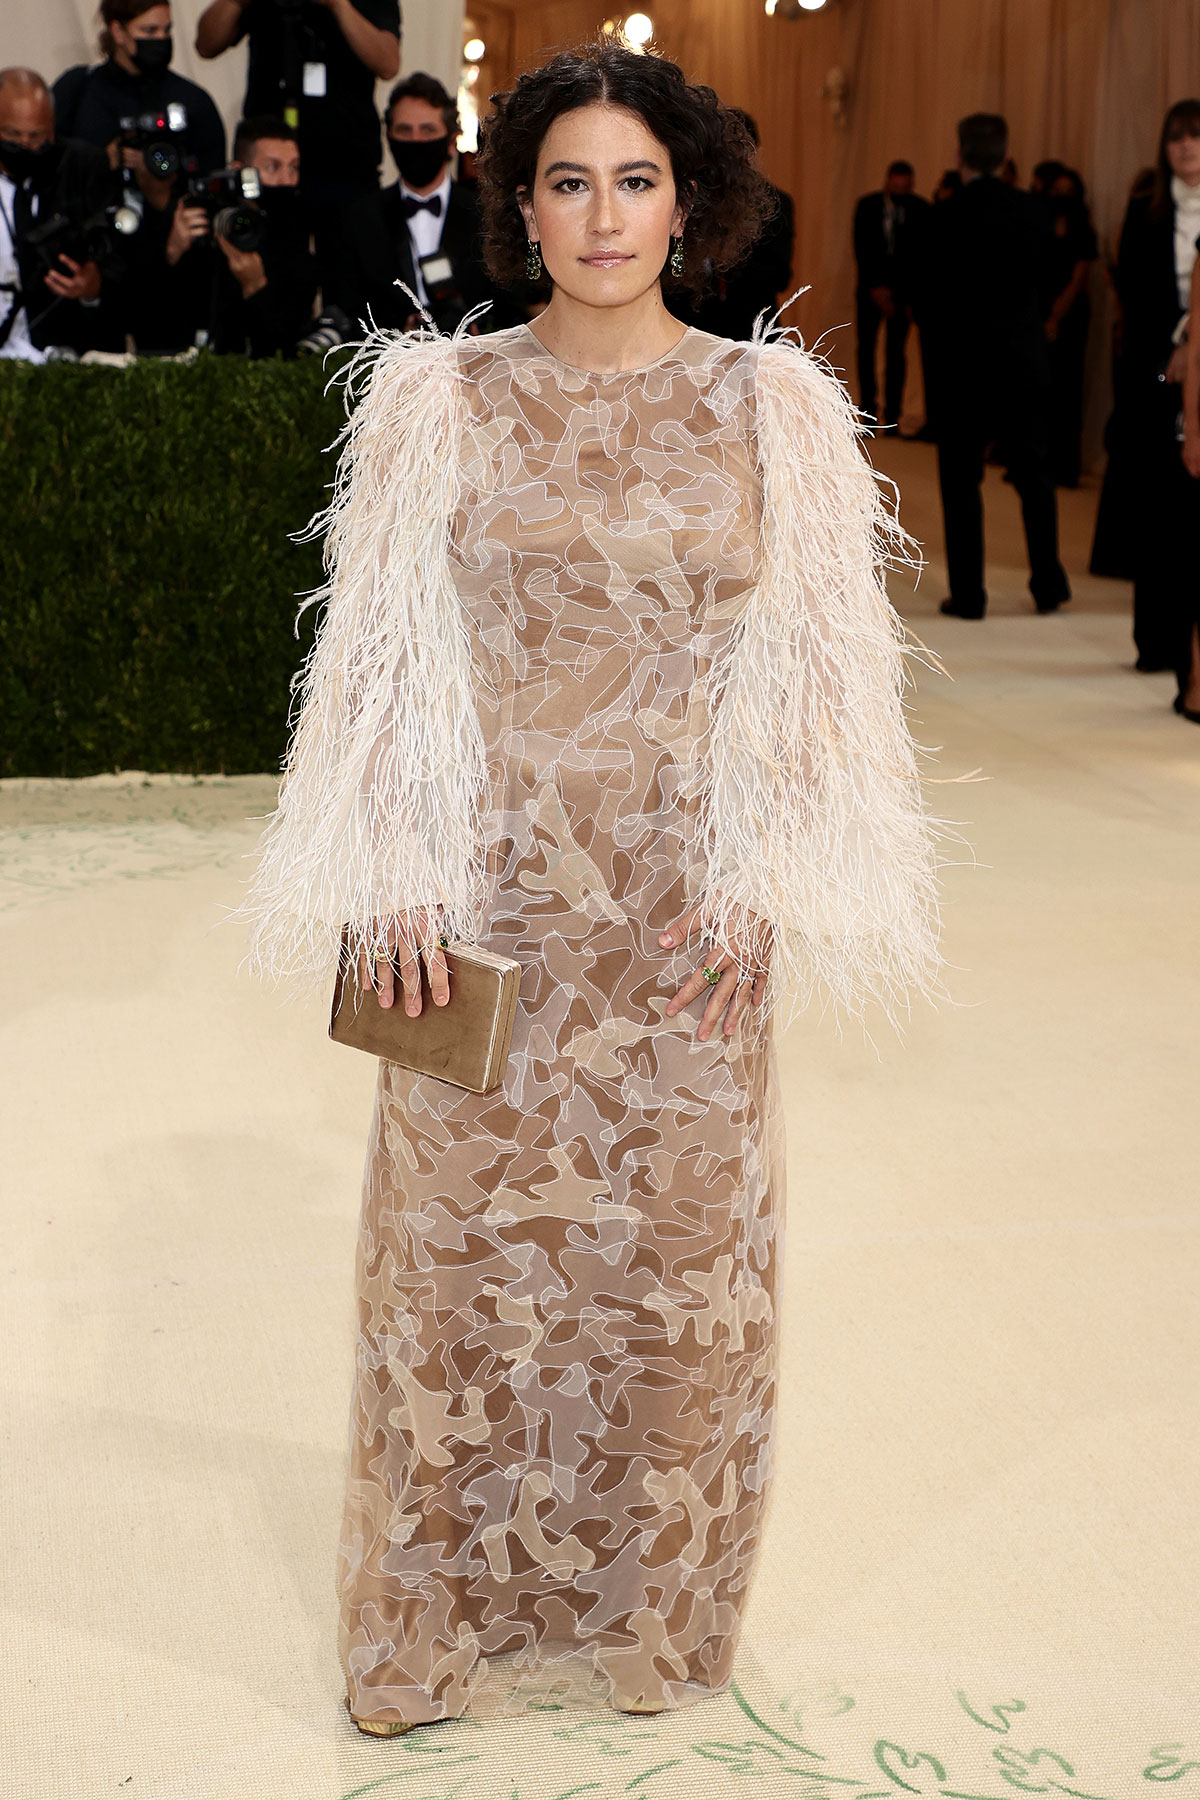 Ilana Glazer attends The 2021 Met Gala Celebrating In America: A Lexicon Of Fashion at Metropolitan Museum of Art on September 13, 2021